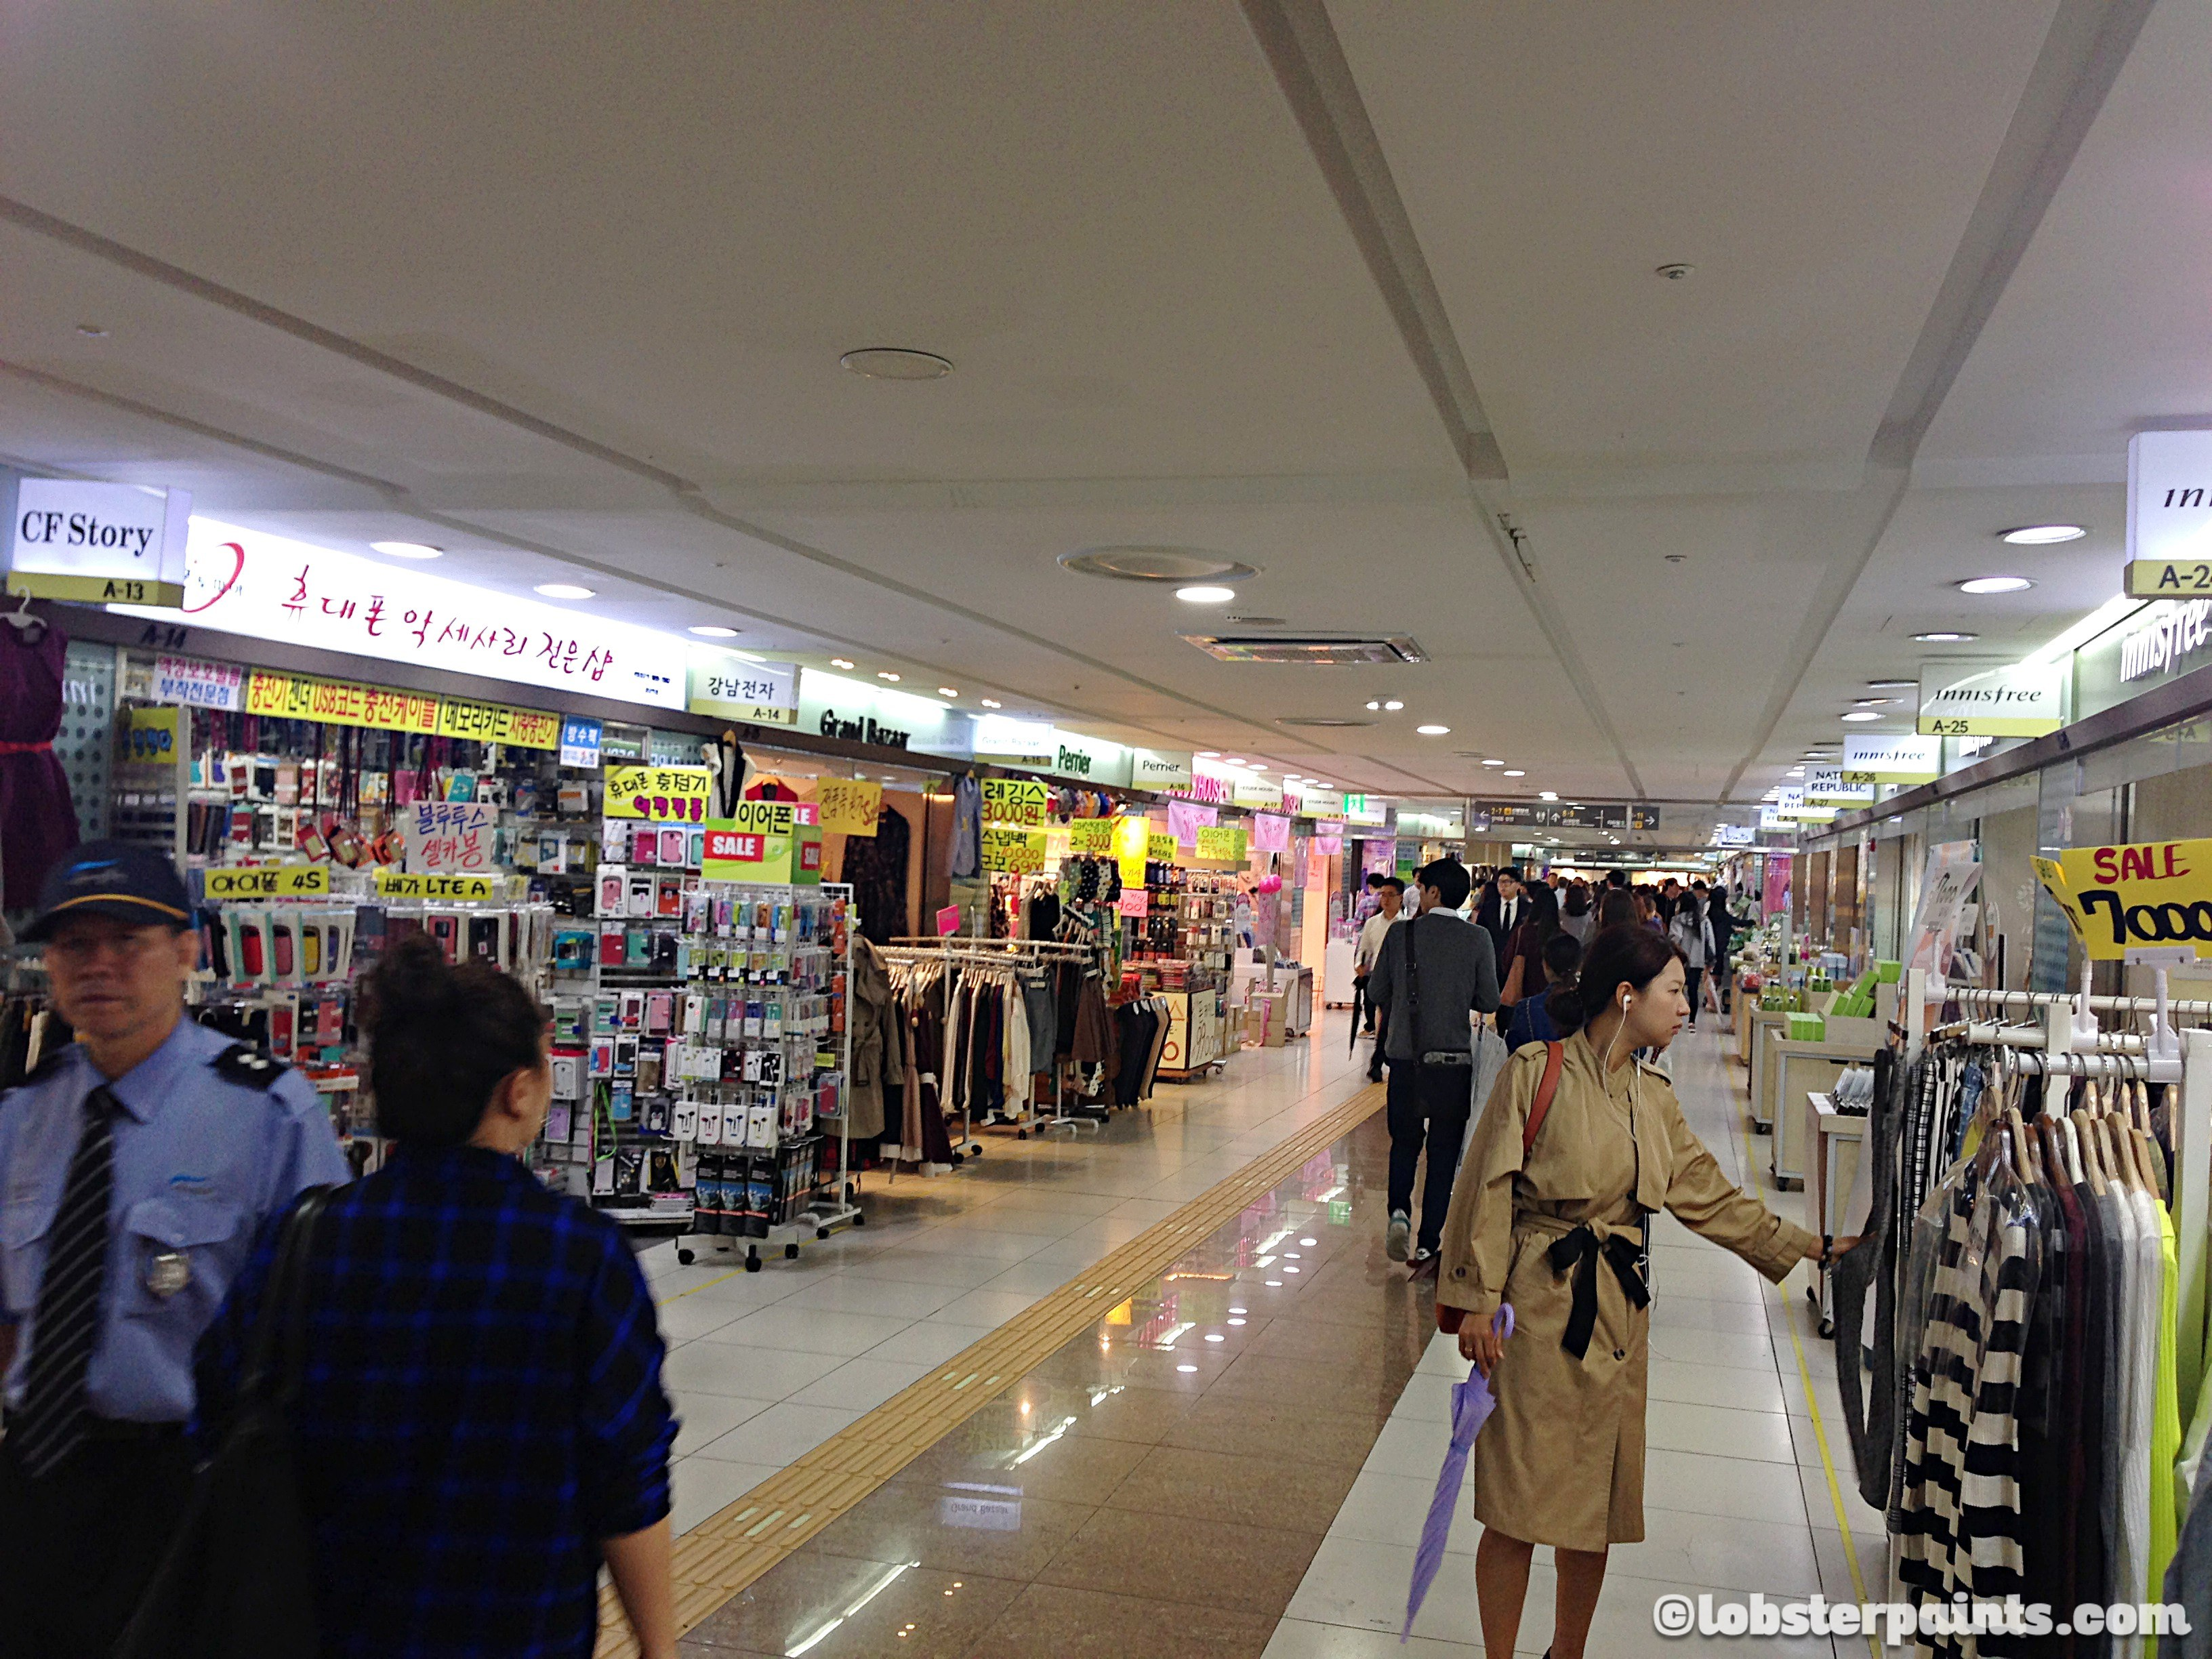 2 Oct 2014: Gangnam Station Underground Shopping Centre | Seoul, South Korea